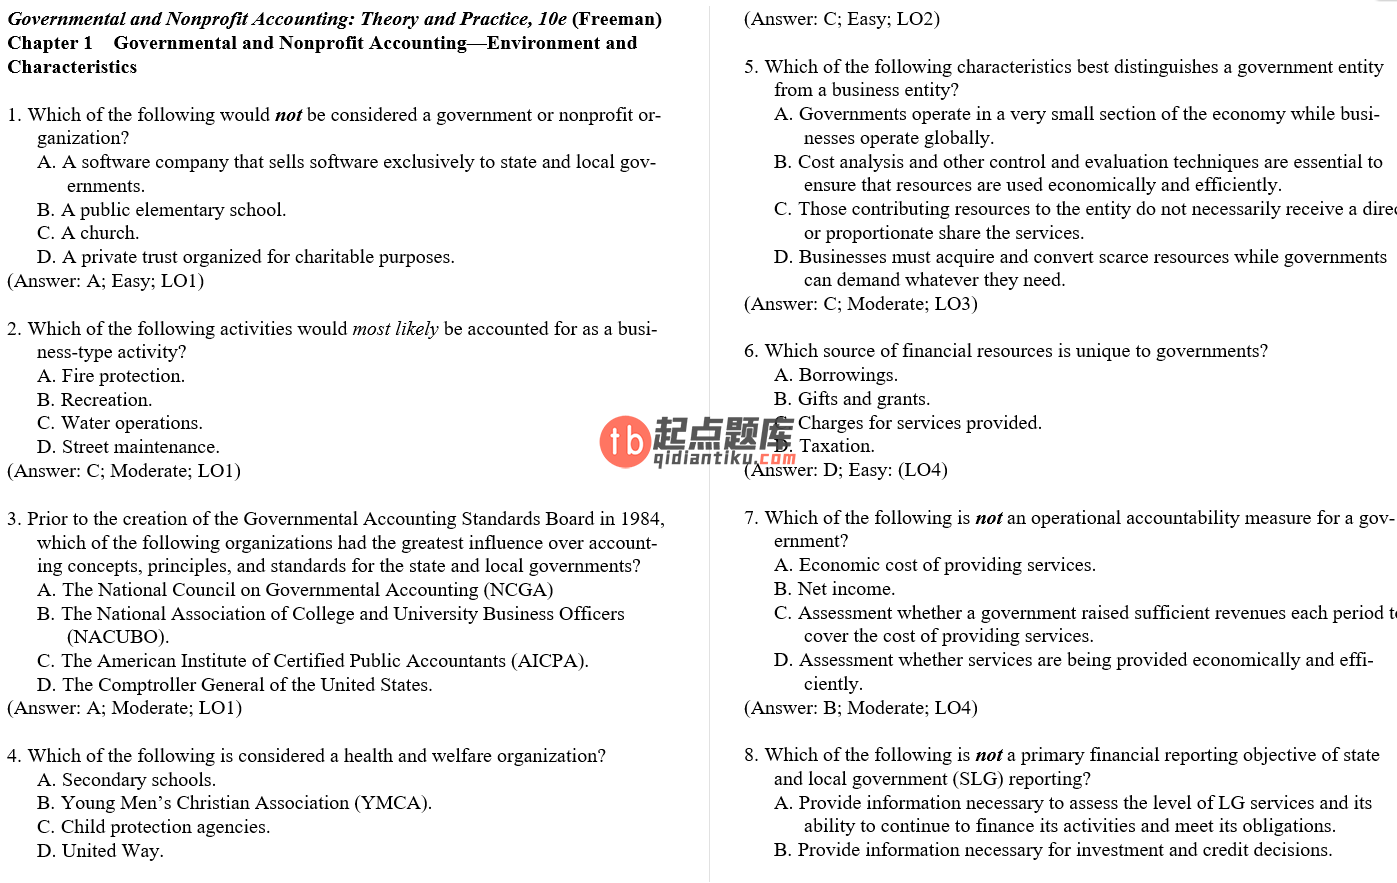 test bank for Governmental and Nonprofit Accounting 10th Edition的图片 3